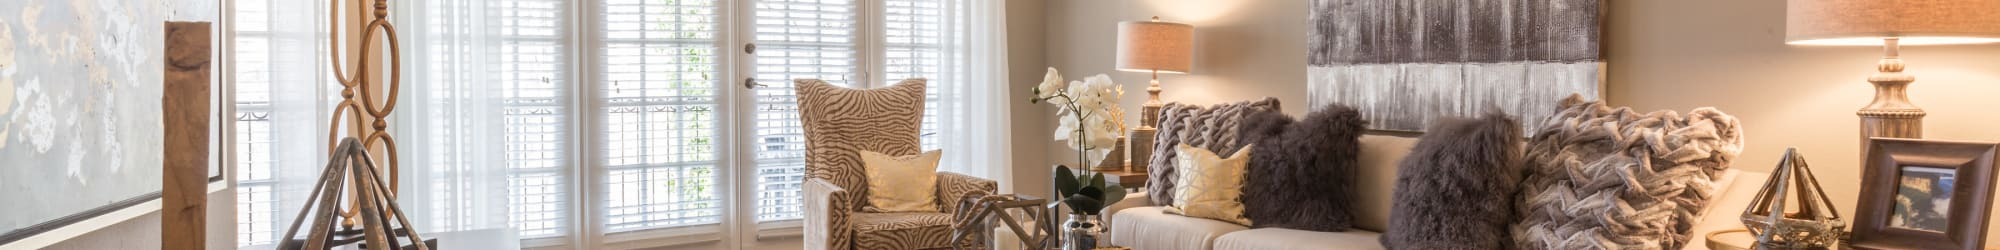 Schedule a tour for The Ashford Apartment Homes in Brookhaven, Georgia